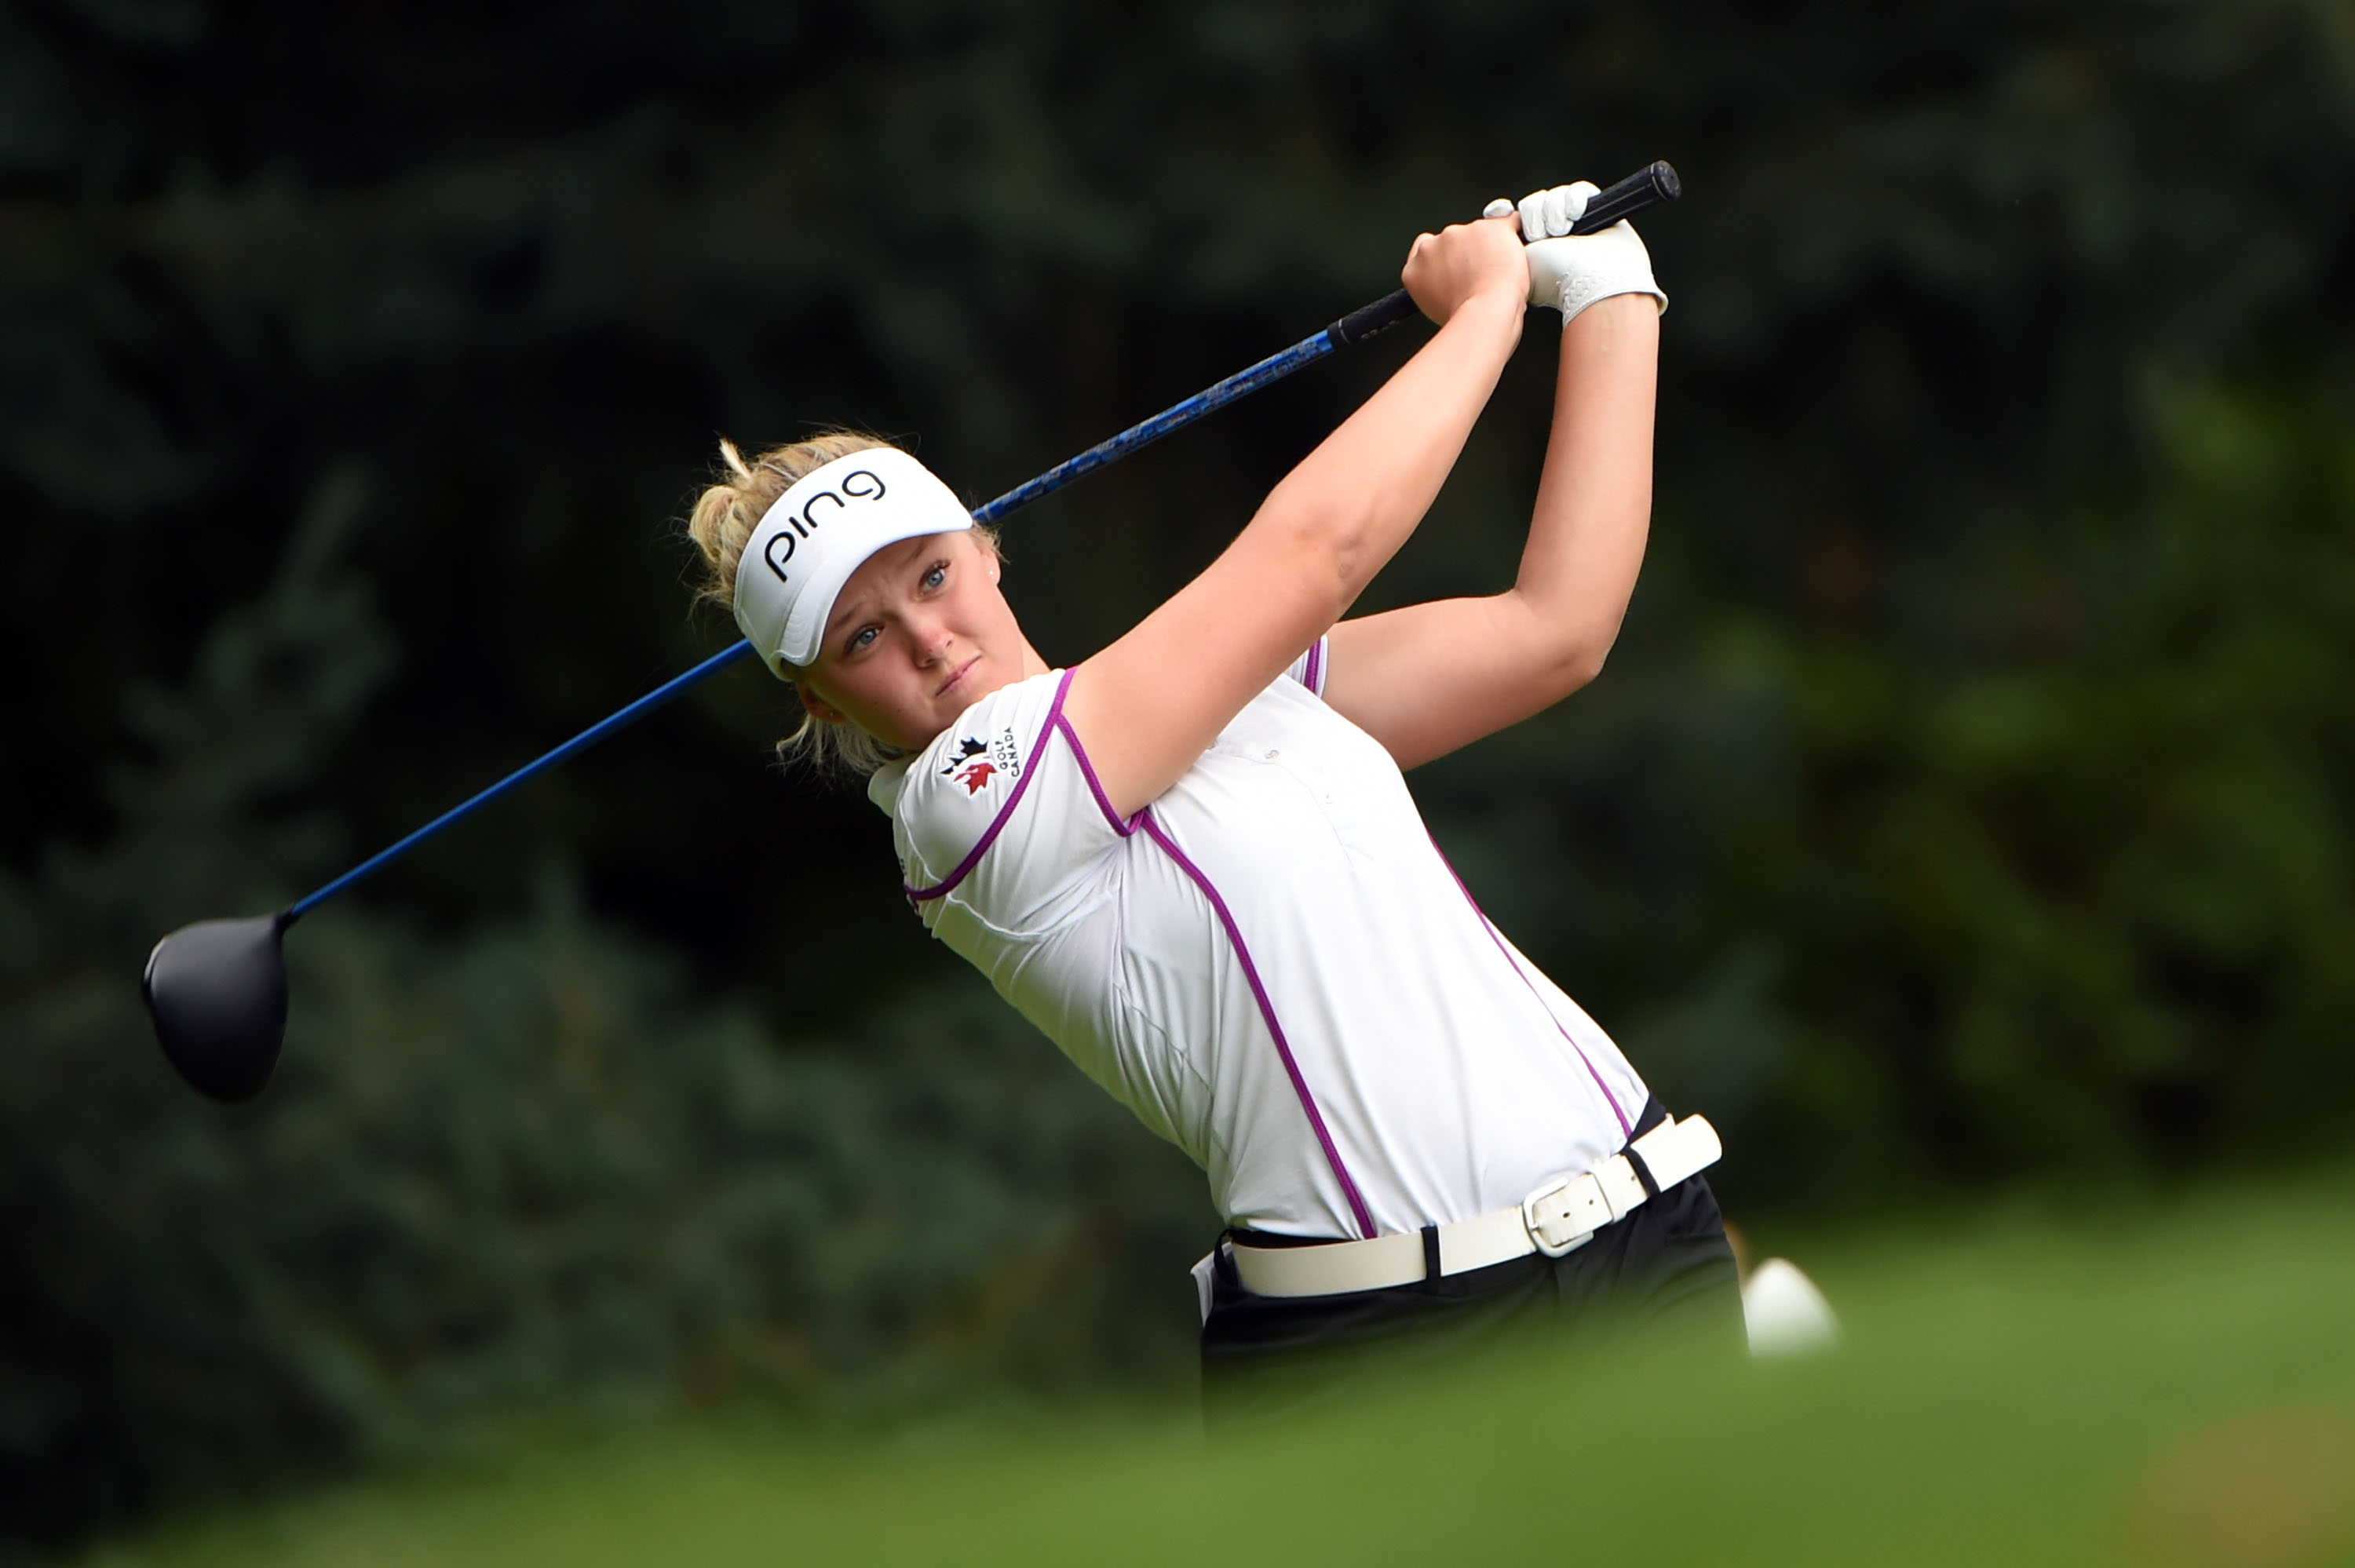 Brooke M. Henderson of Canada hits her tee shot on the third hole during the third round of the LPGA Cambia Portland golf tournament in Portland, Ore., Saturday, Aug. 15, 2015. (AP Photo/Steve Dykes)